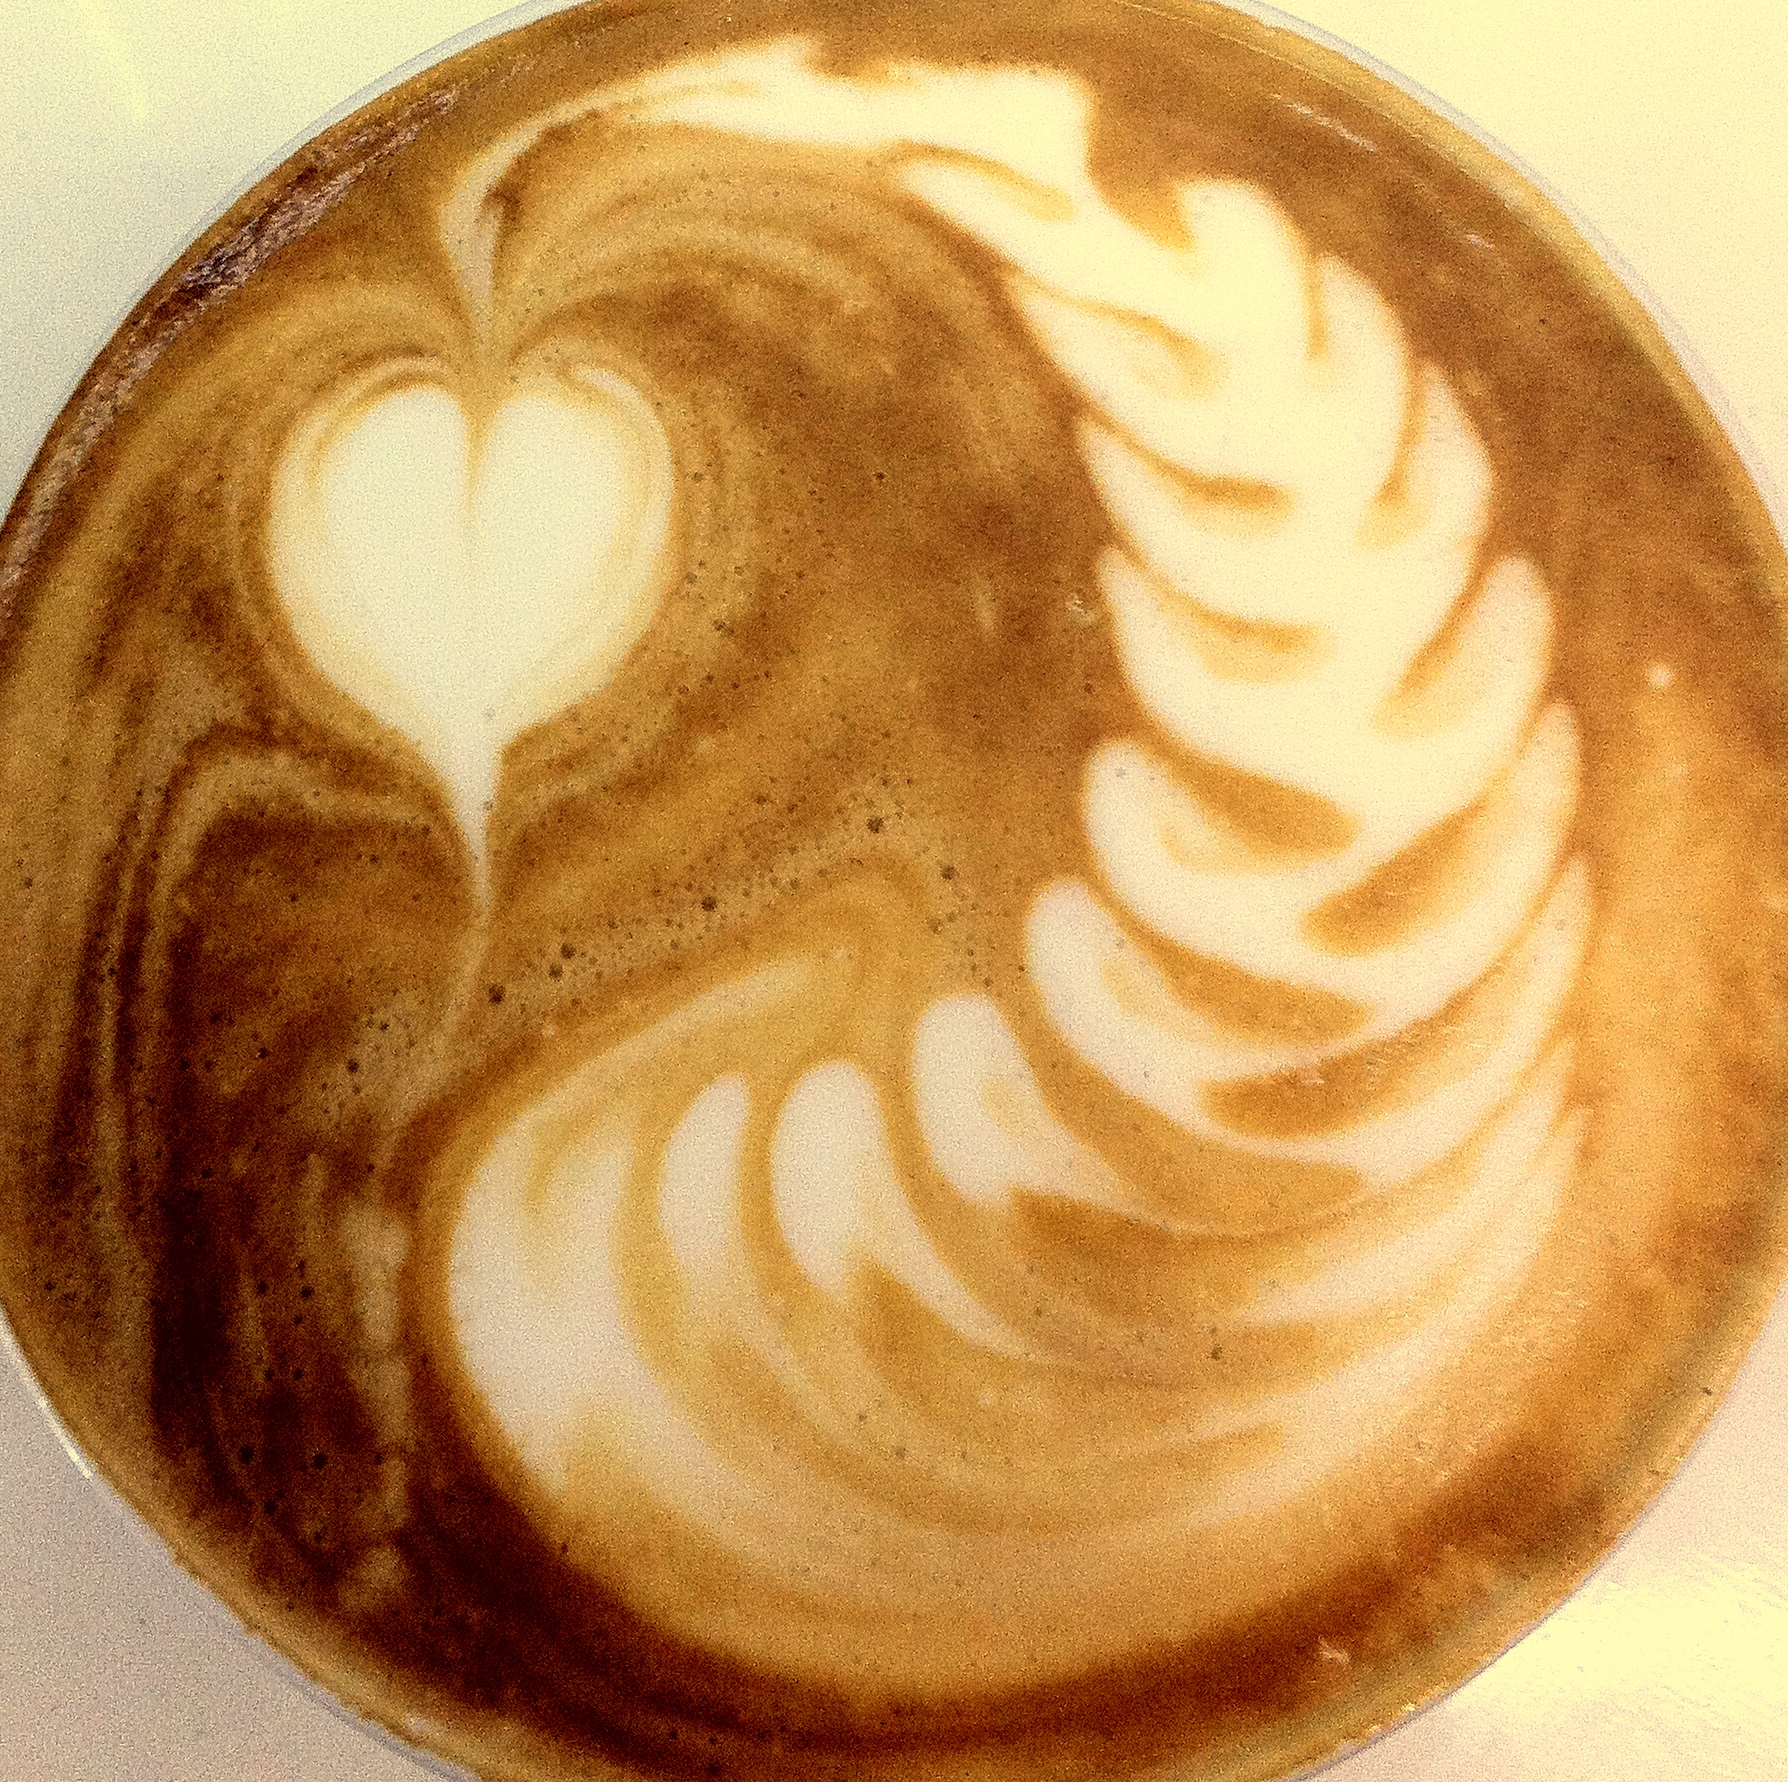 Great latte